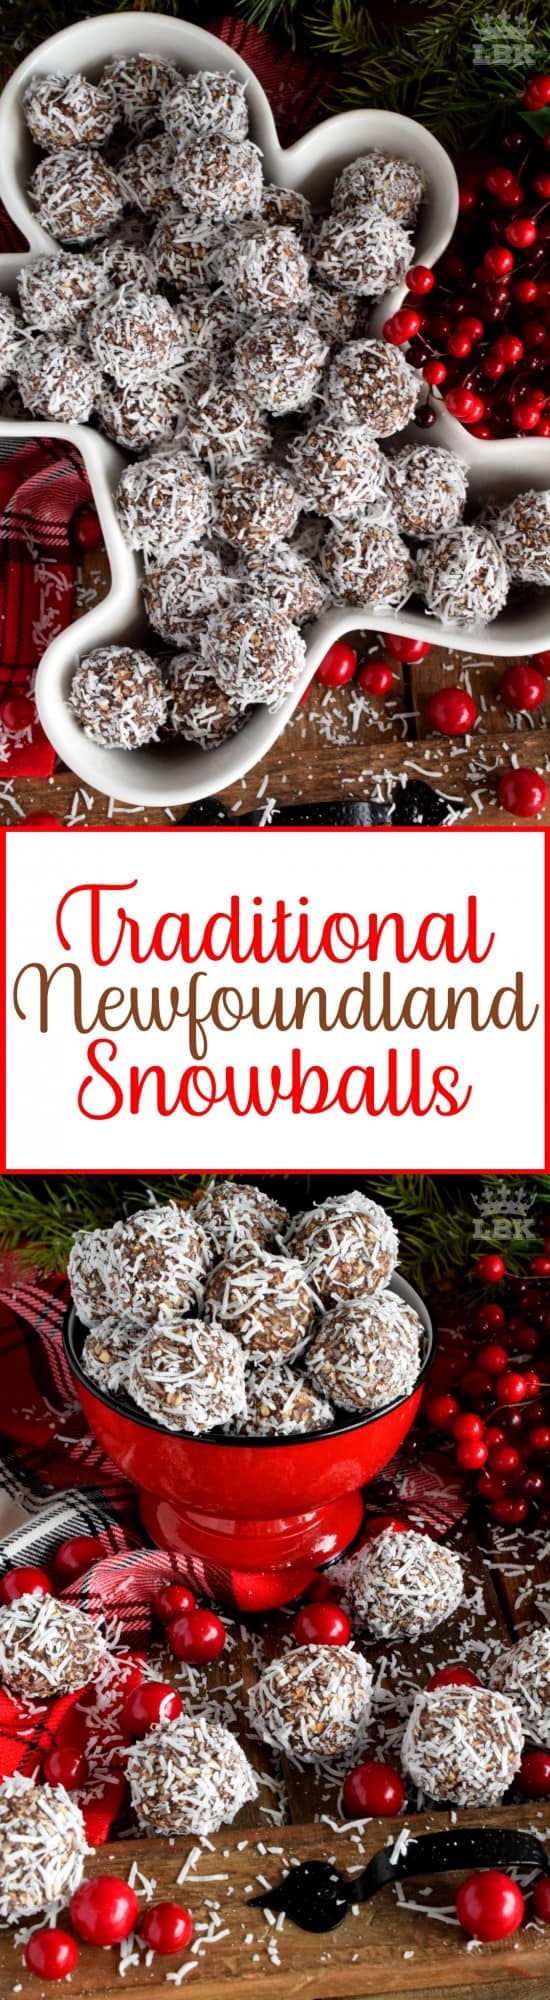 Traditional Newfoundland Snowballs - One of the most recognized confections in Newfoundland, these traditional snowballs are a no-bake version with lots of chocolate and coconut flavour!#chocolate #snowballs #traditional #newfoundland #christmas #holiday